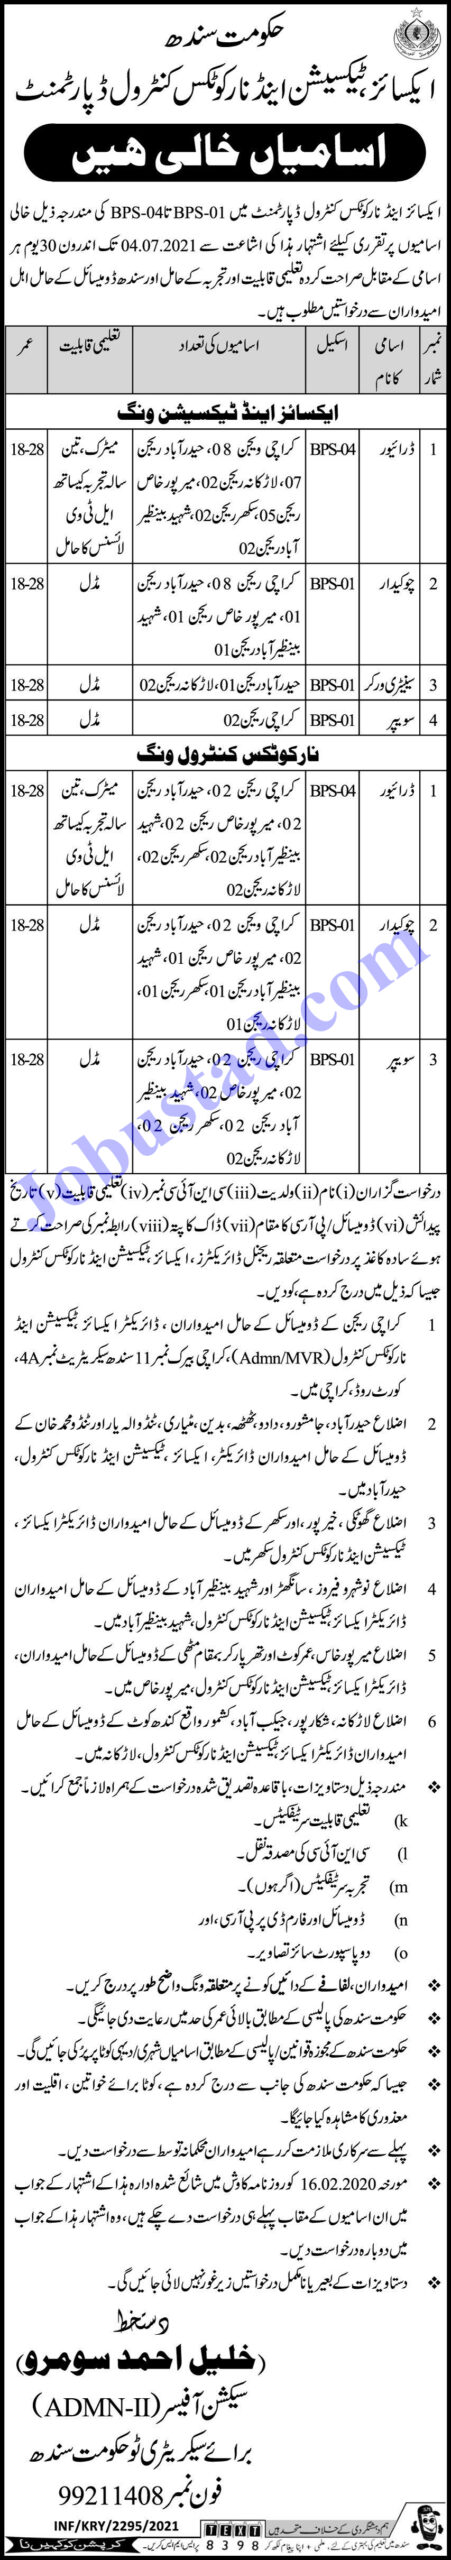 Excise Taxation & Narcotics Control Department Sindh Jobs 2021 in Pakistan - Excise and Taxation Sindh Latest Jobs 2021